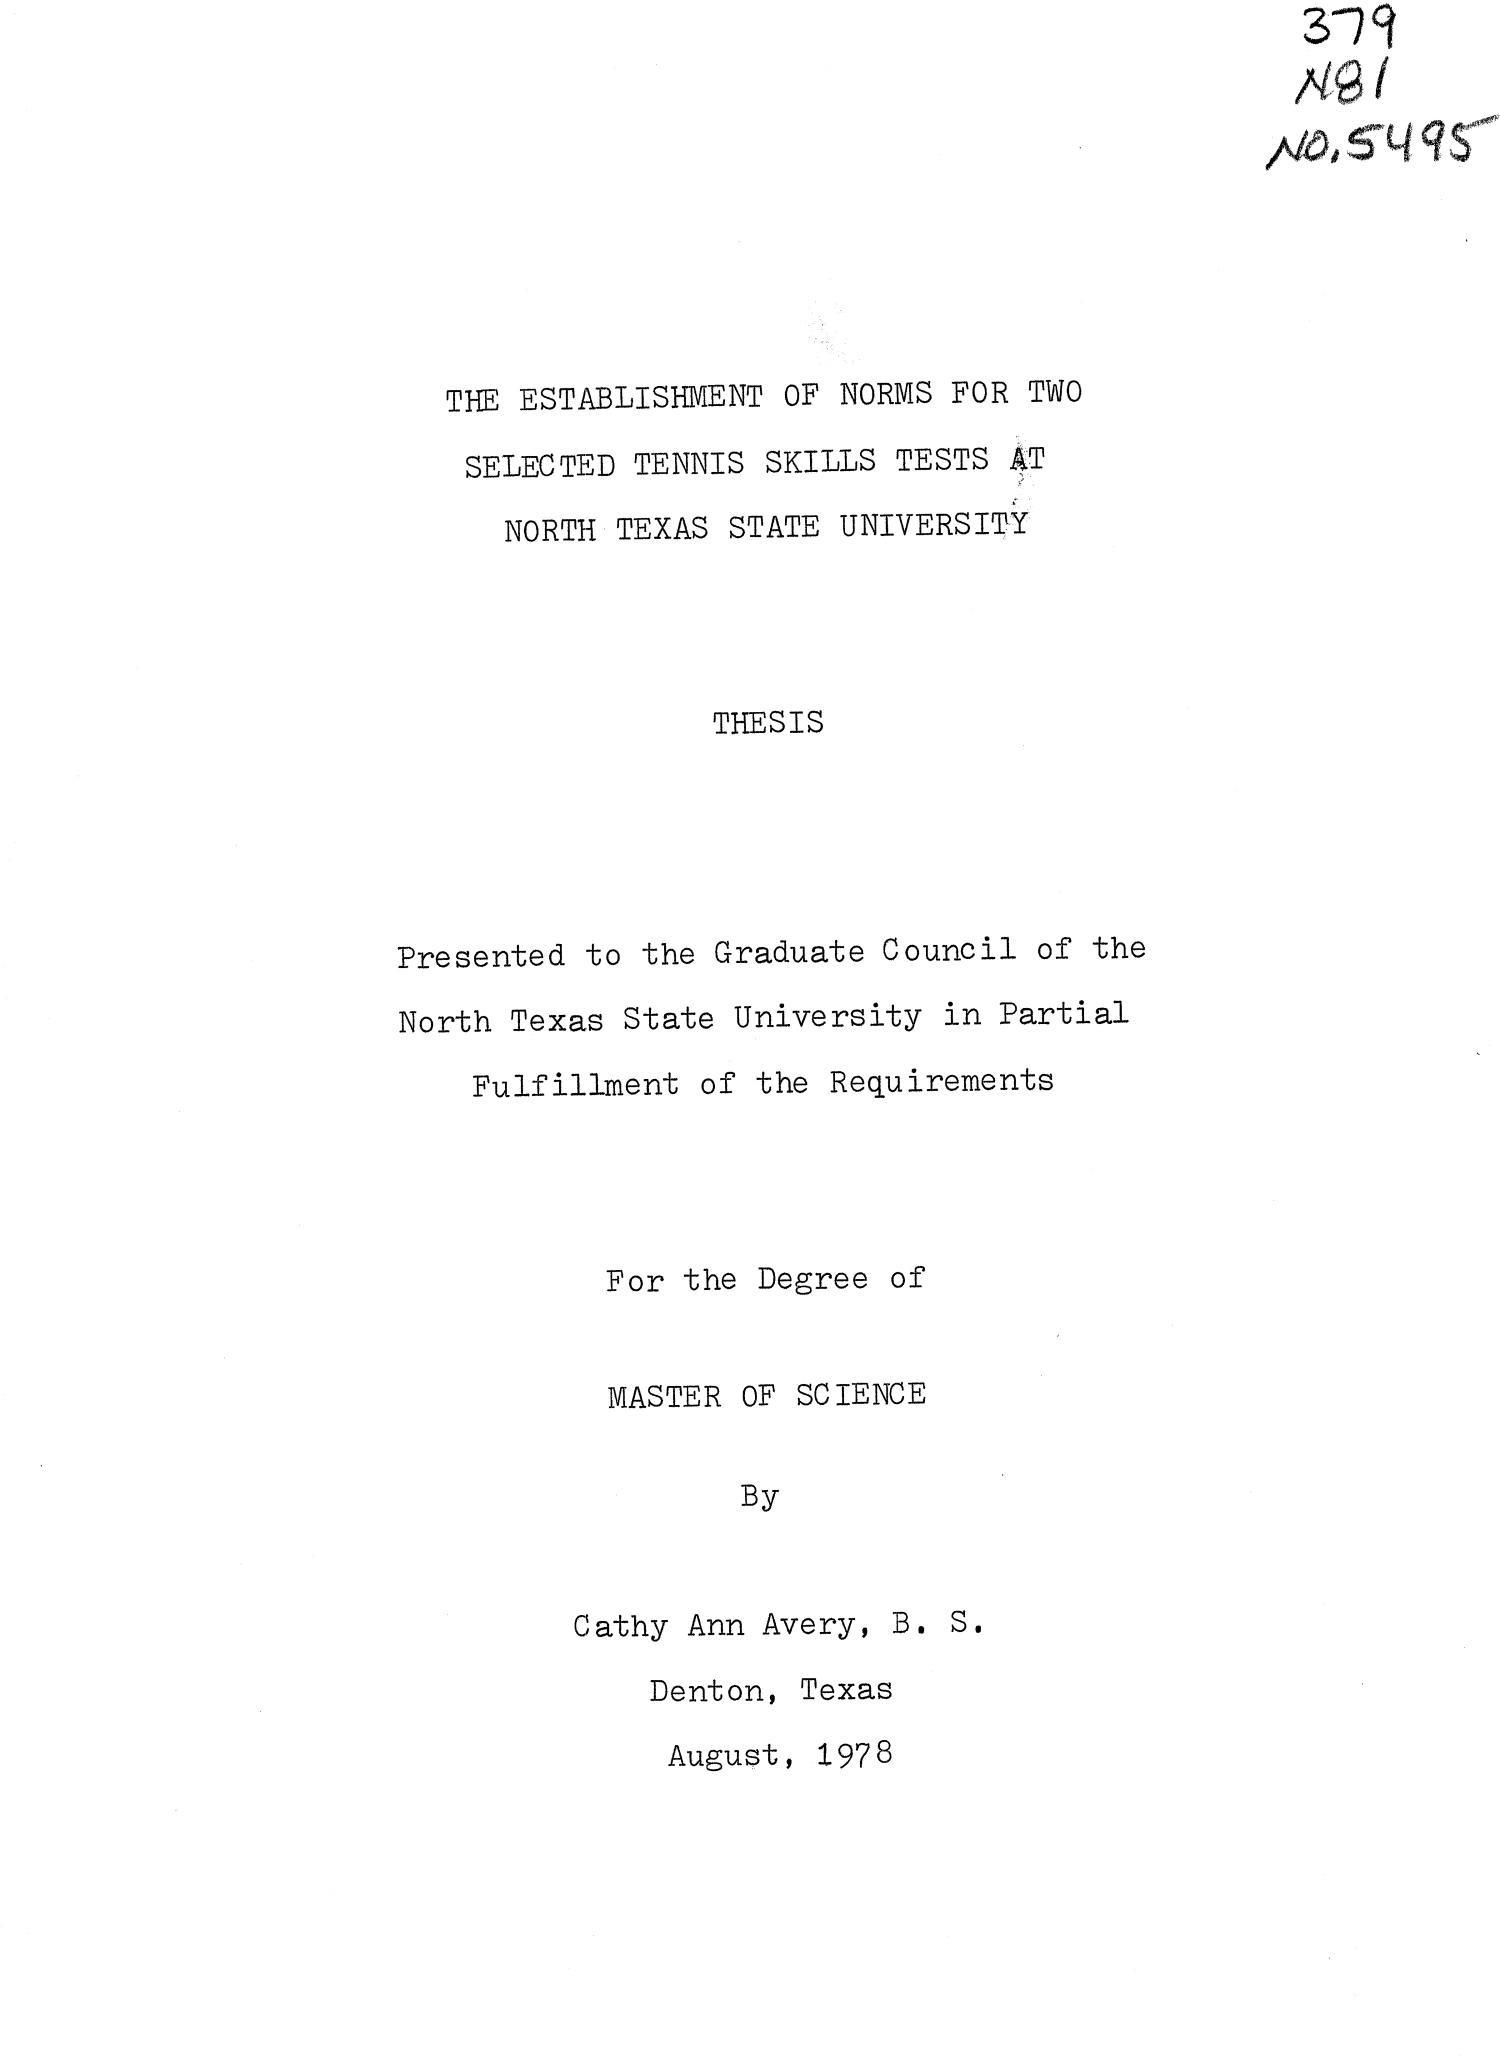 The Establishment of Norms for Two Selected Tennis Skills Tests at North Texas State University                                                                                                      Title Page